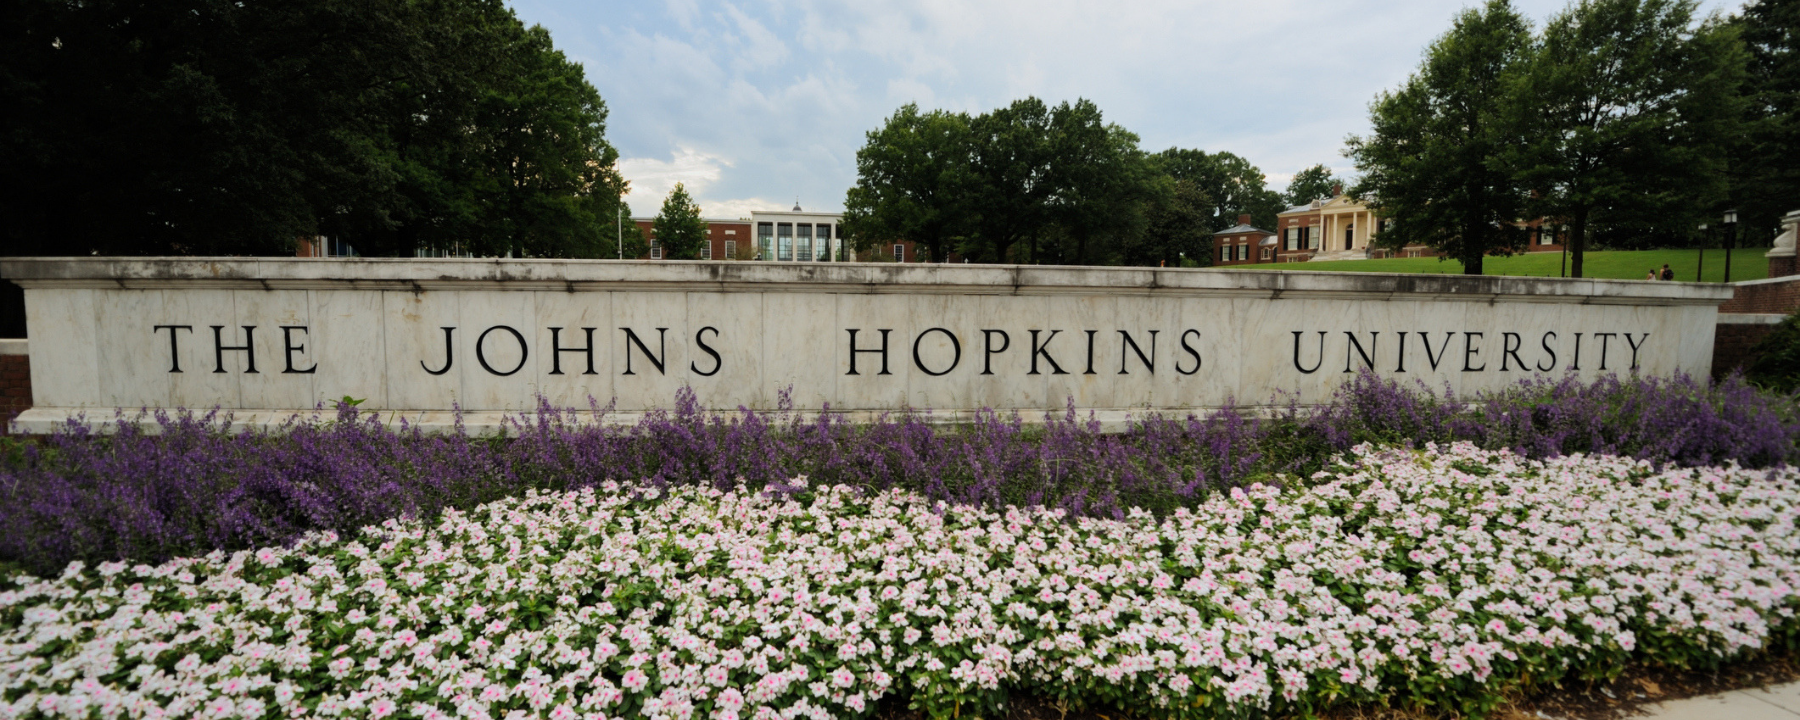 Two Professors Leave Johns Hopkins over Misconduct